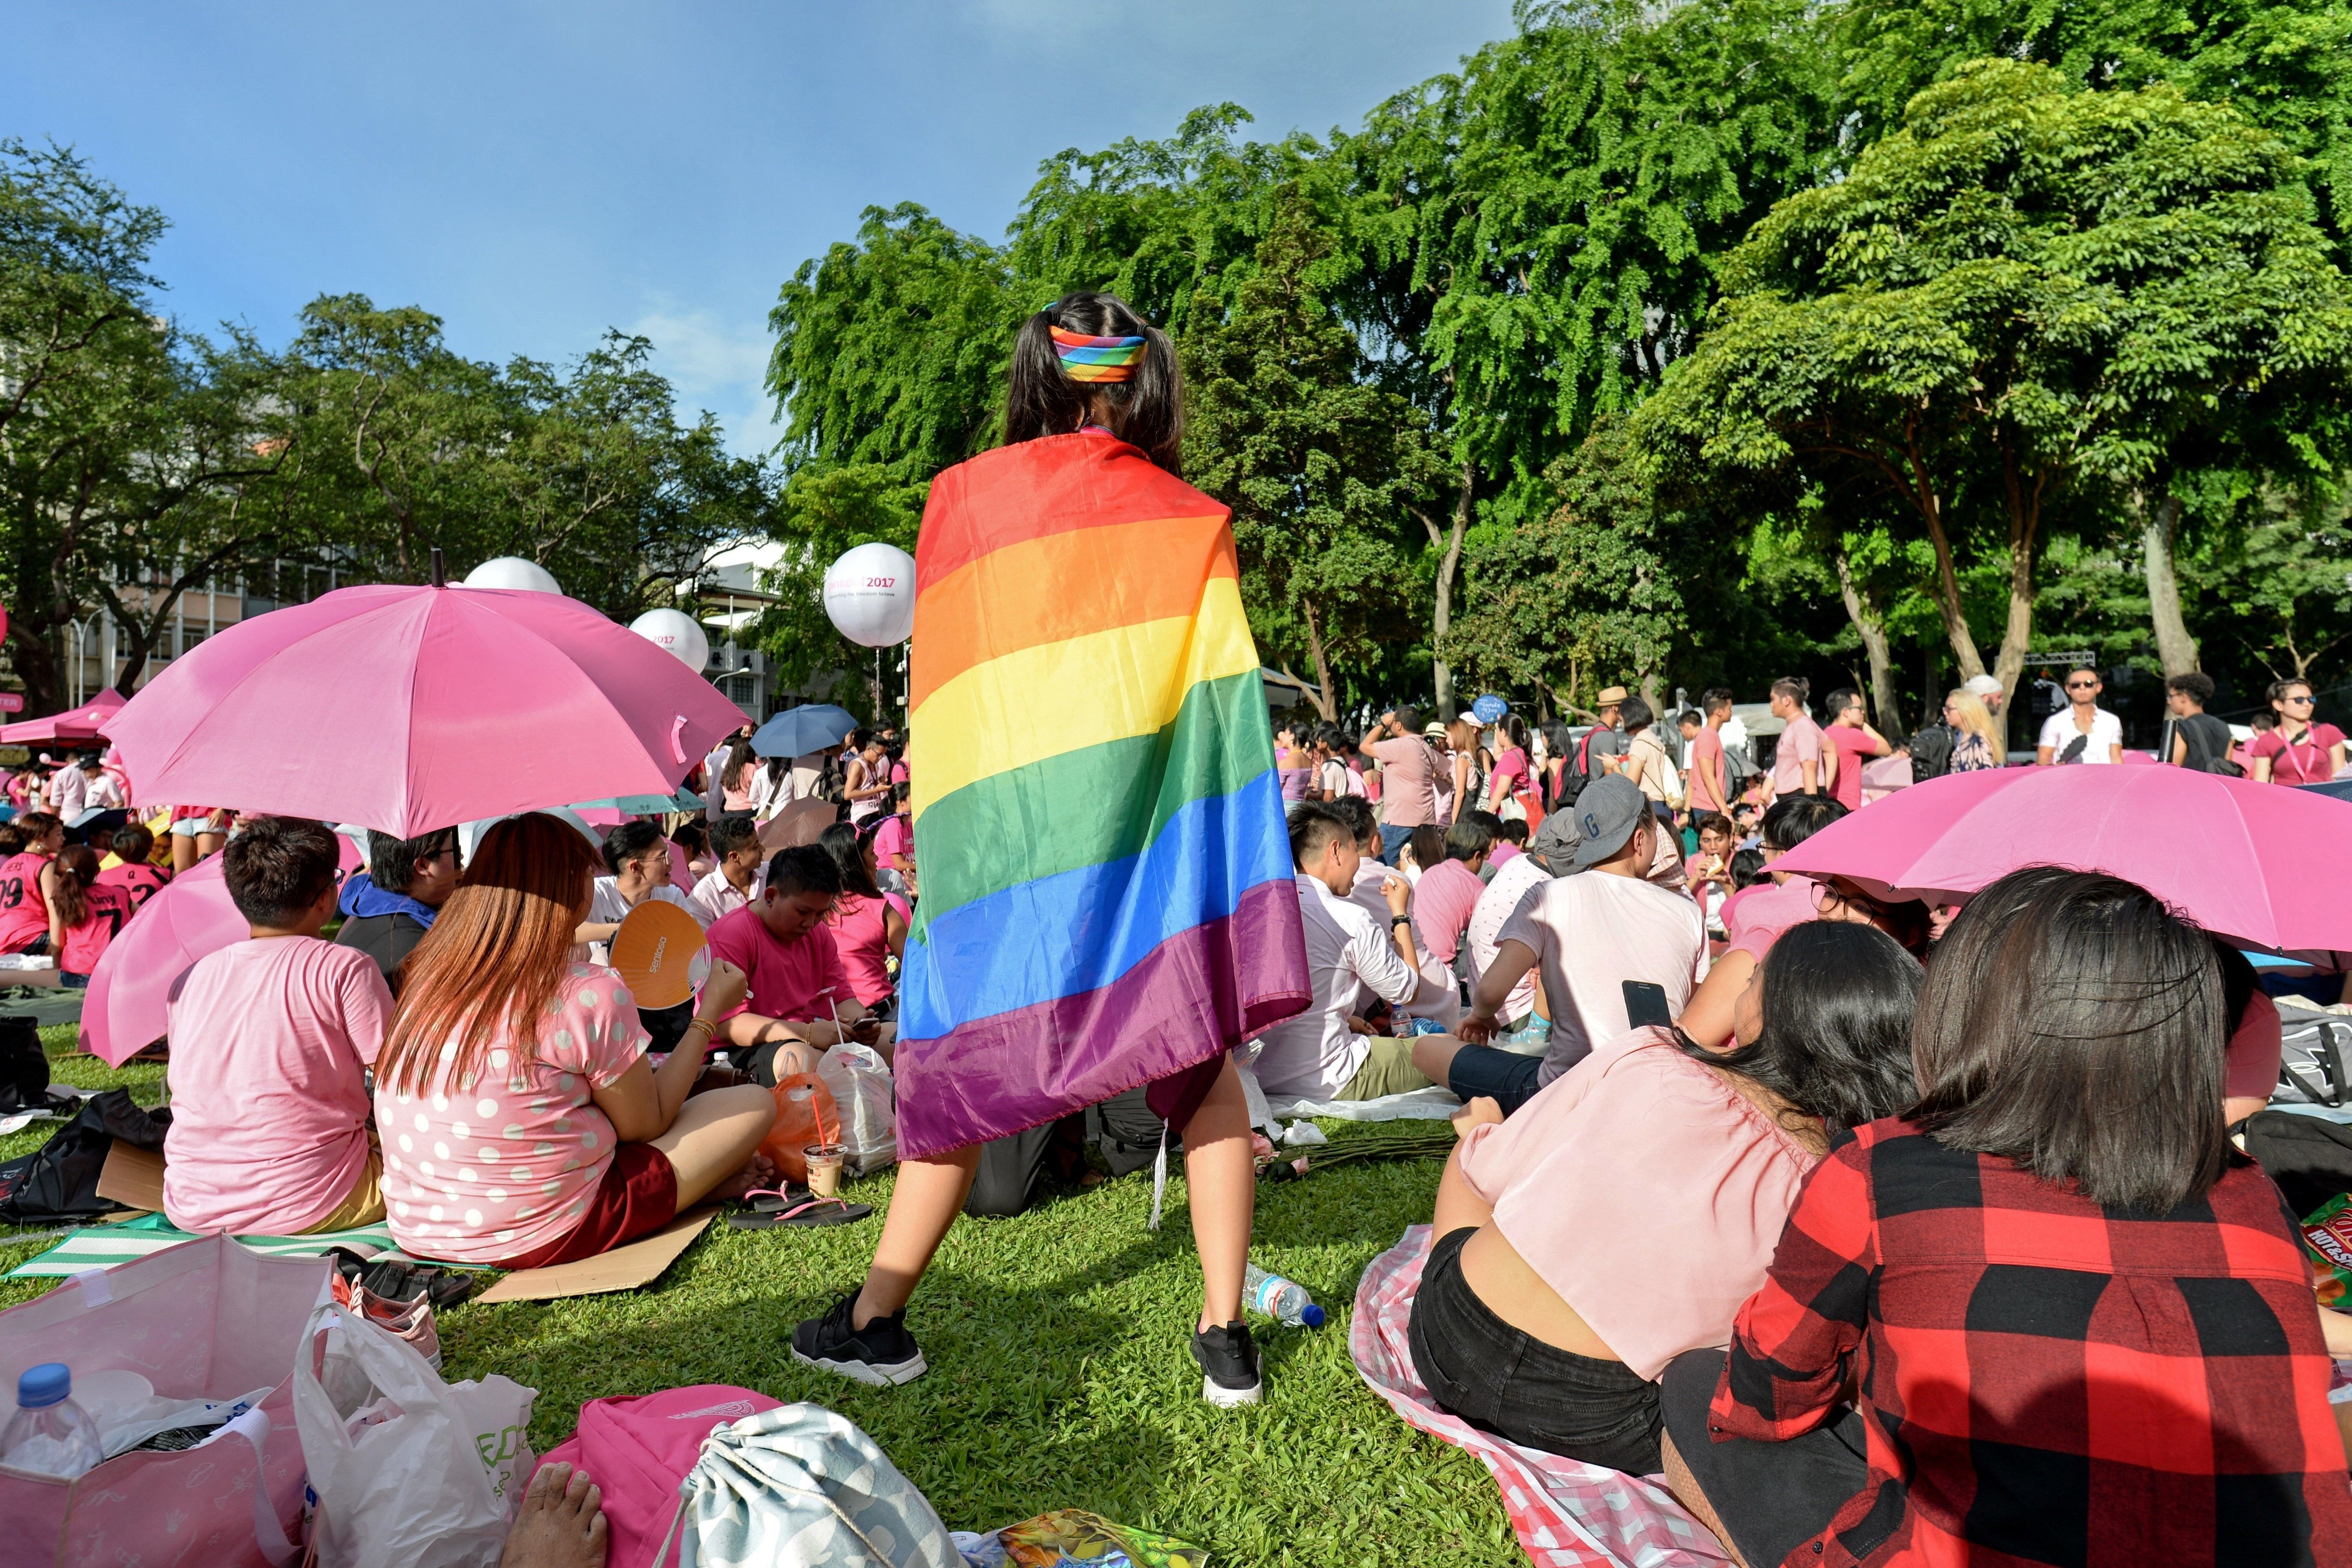 A supporter wrapped in a rainbow flag attends the annual 'Pink Dot' event in a public show of support for the LGBT community at Hong Lim Park in Singapore on July 1, 2017.  Thousands of Singaporeans took part in the gay-rights rally on July 1. / AFP PHOTO / Roslan RAHMAN        (Photo credit should read ROSLAN RAHMAN/AFP/Getty Images)